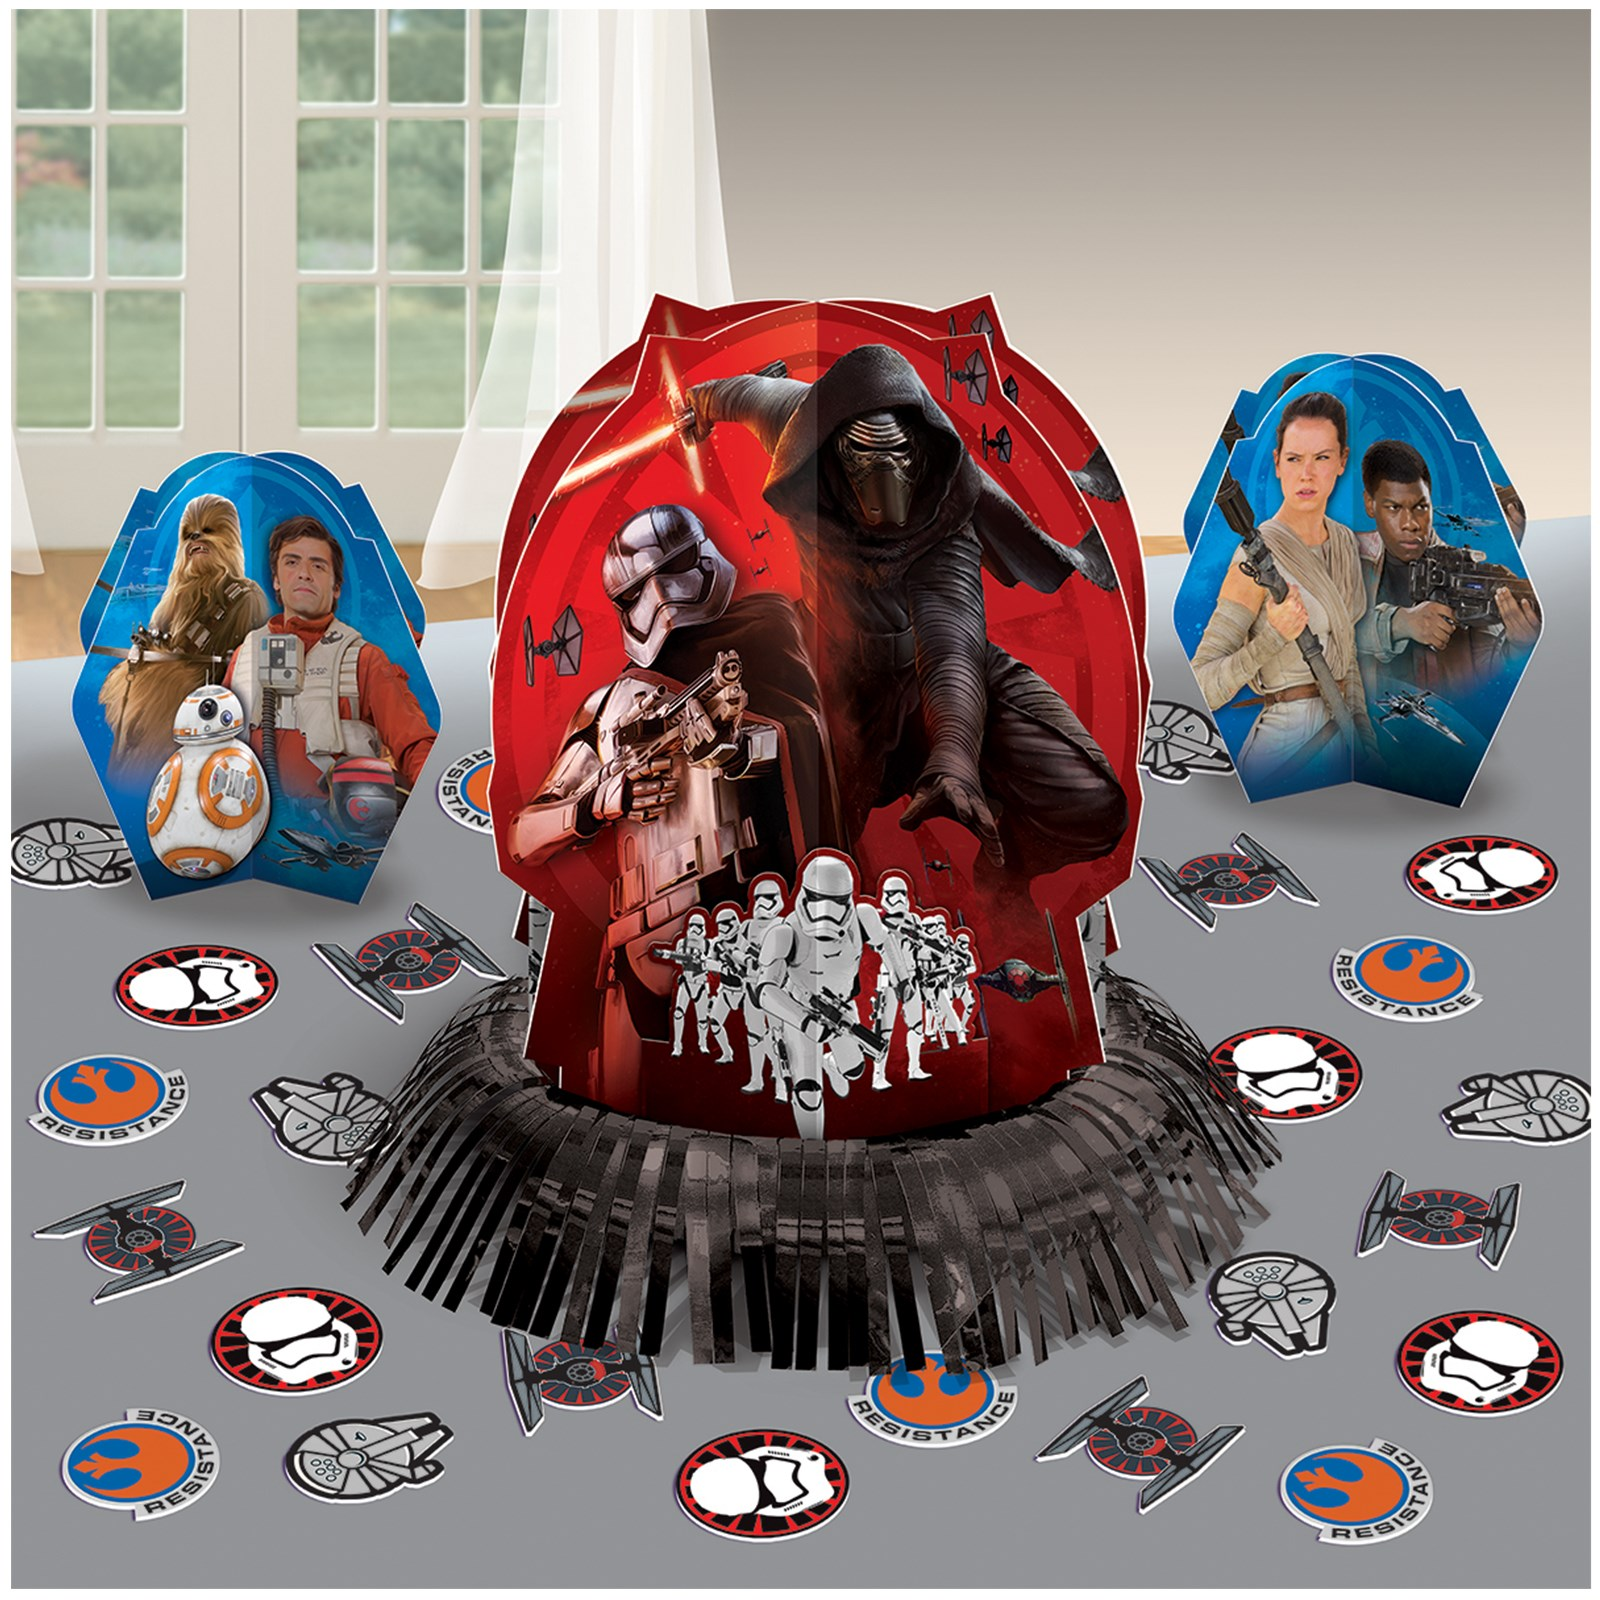 Star wars 7 the force awakens table decorating kit for Star wars dekoration